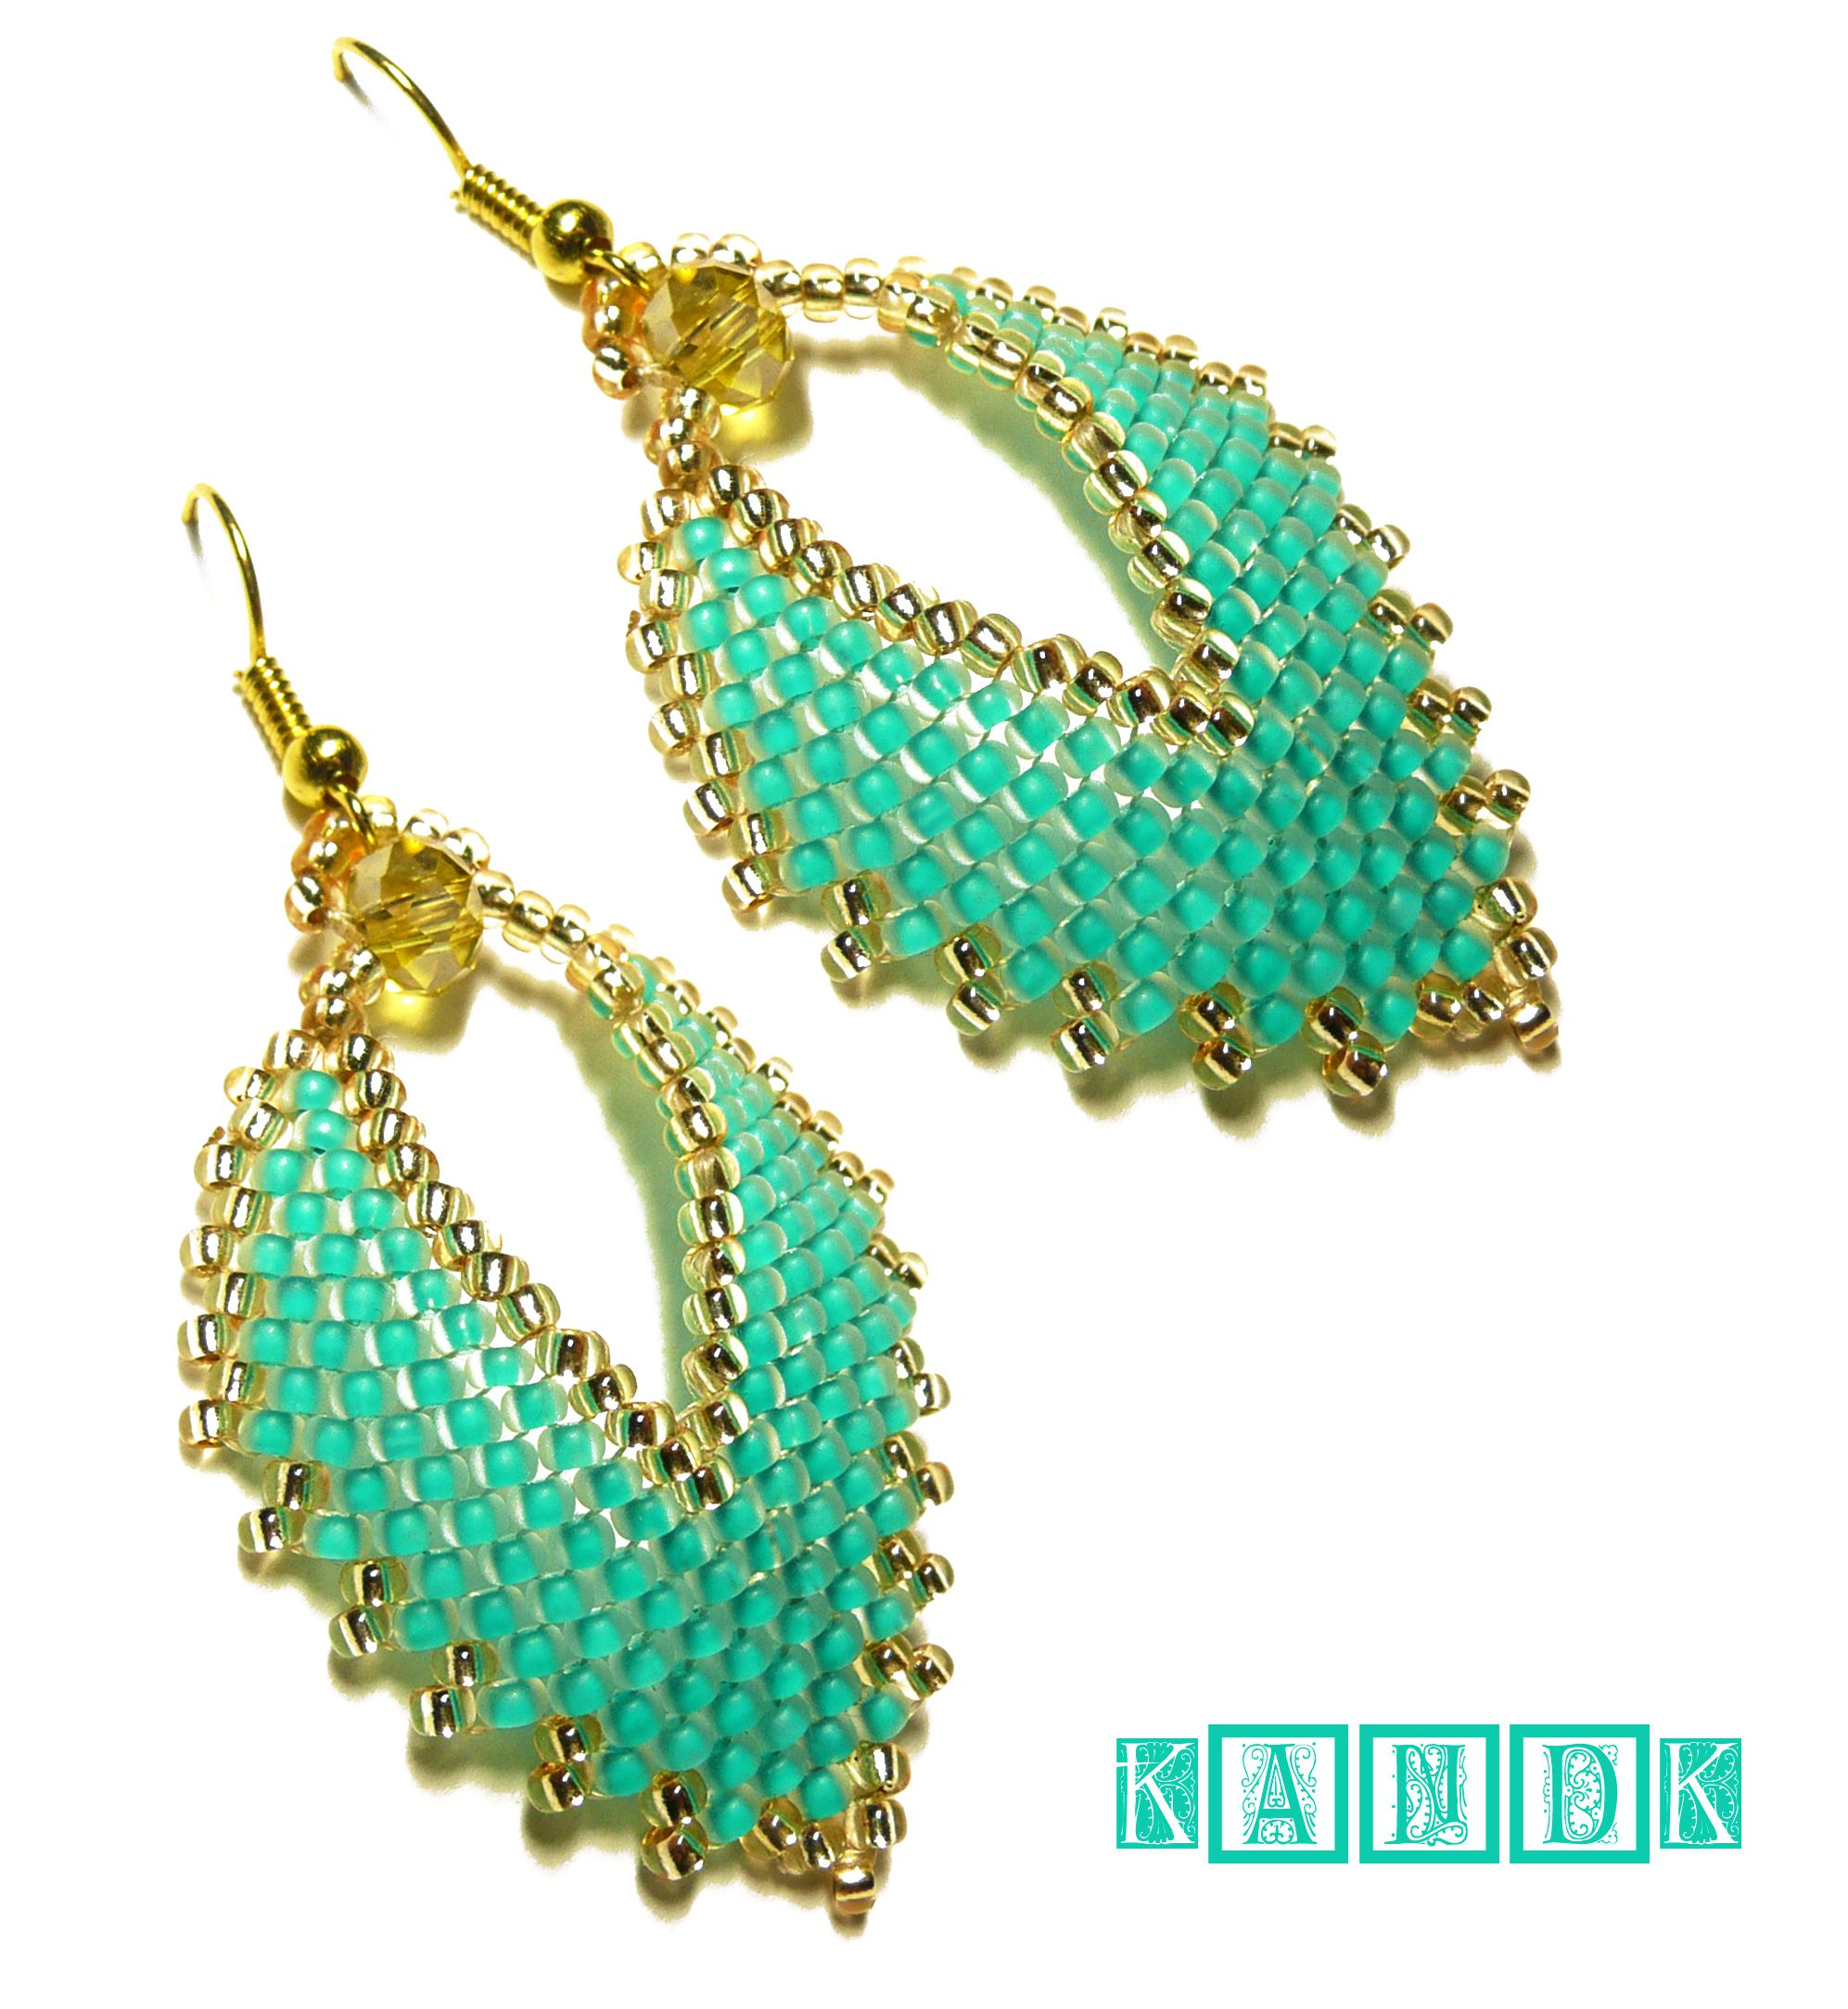 mint earrings kandk leaves